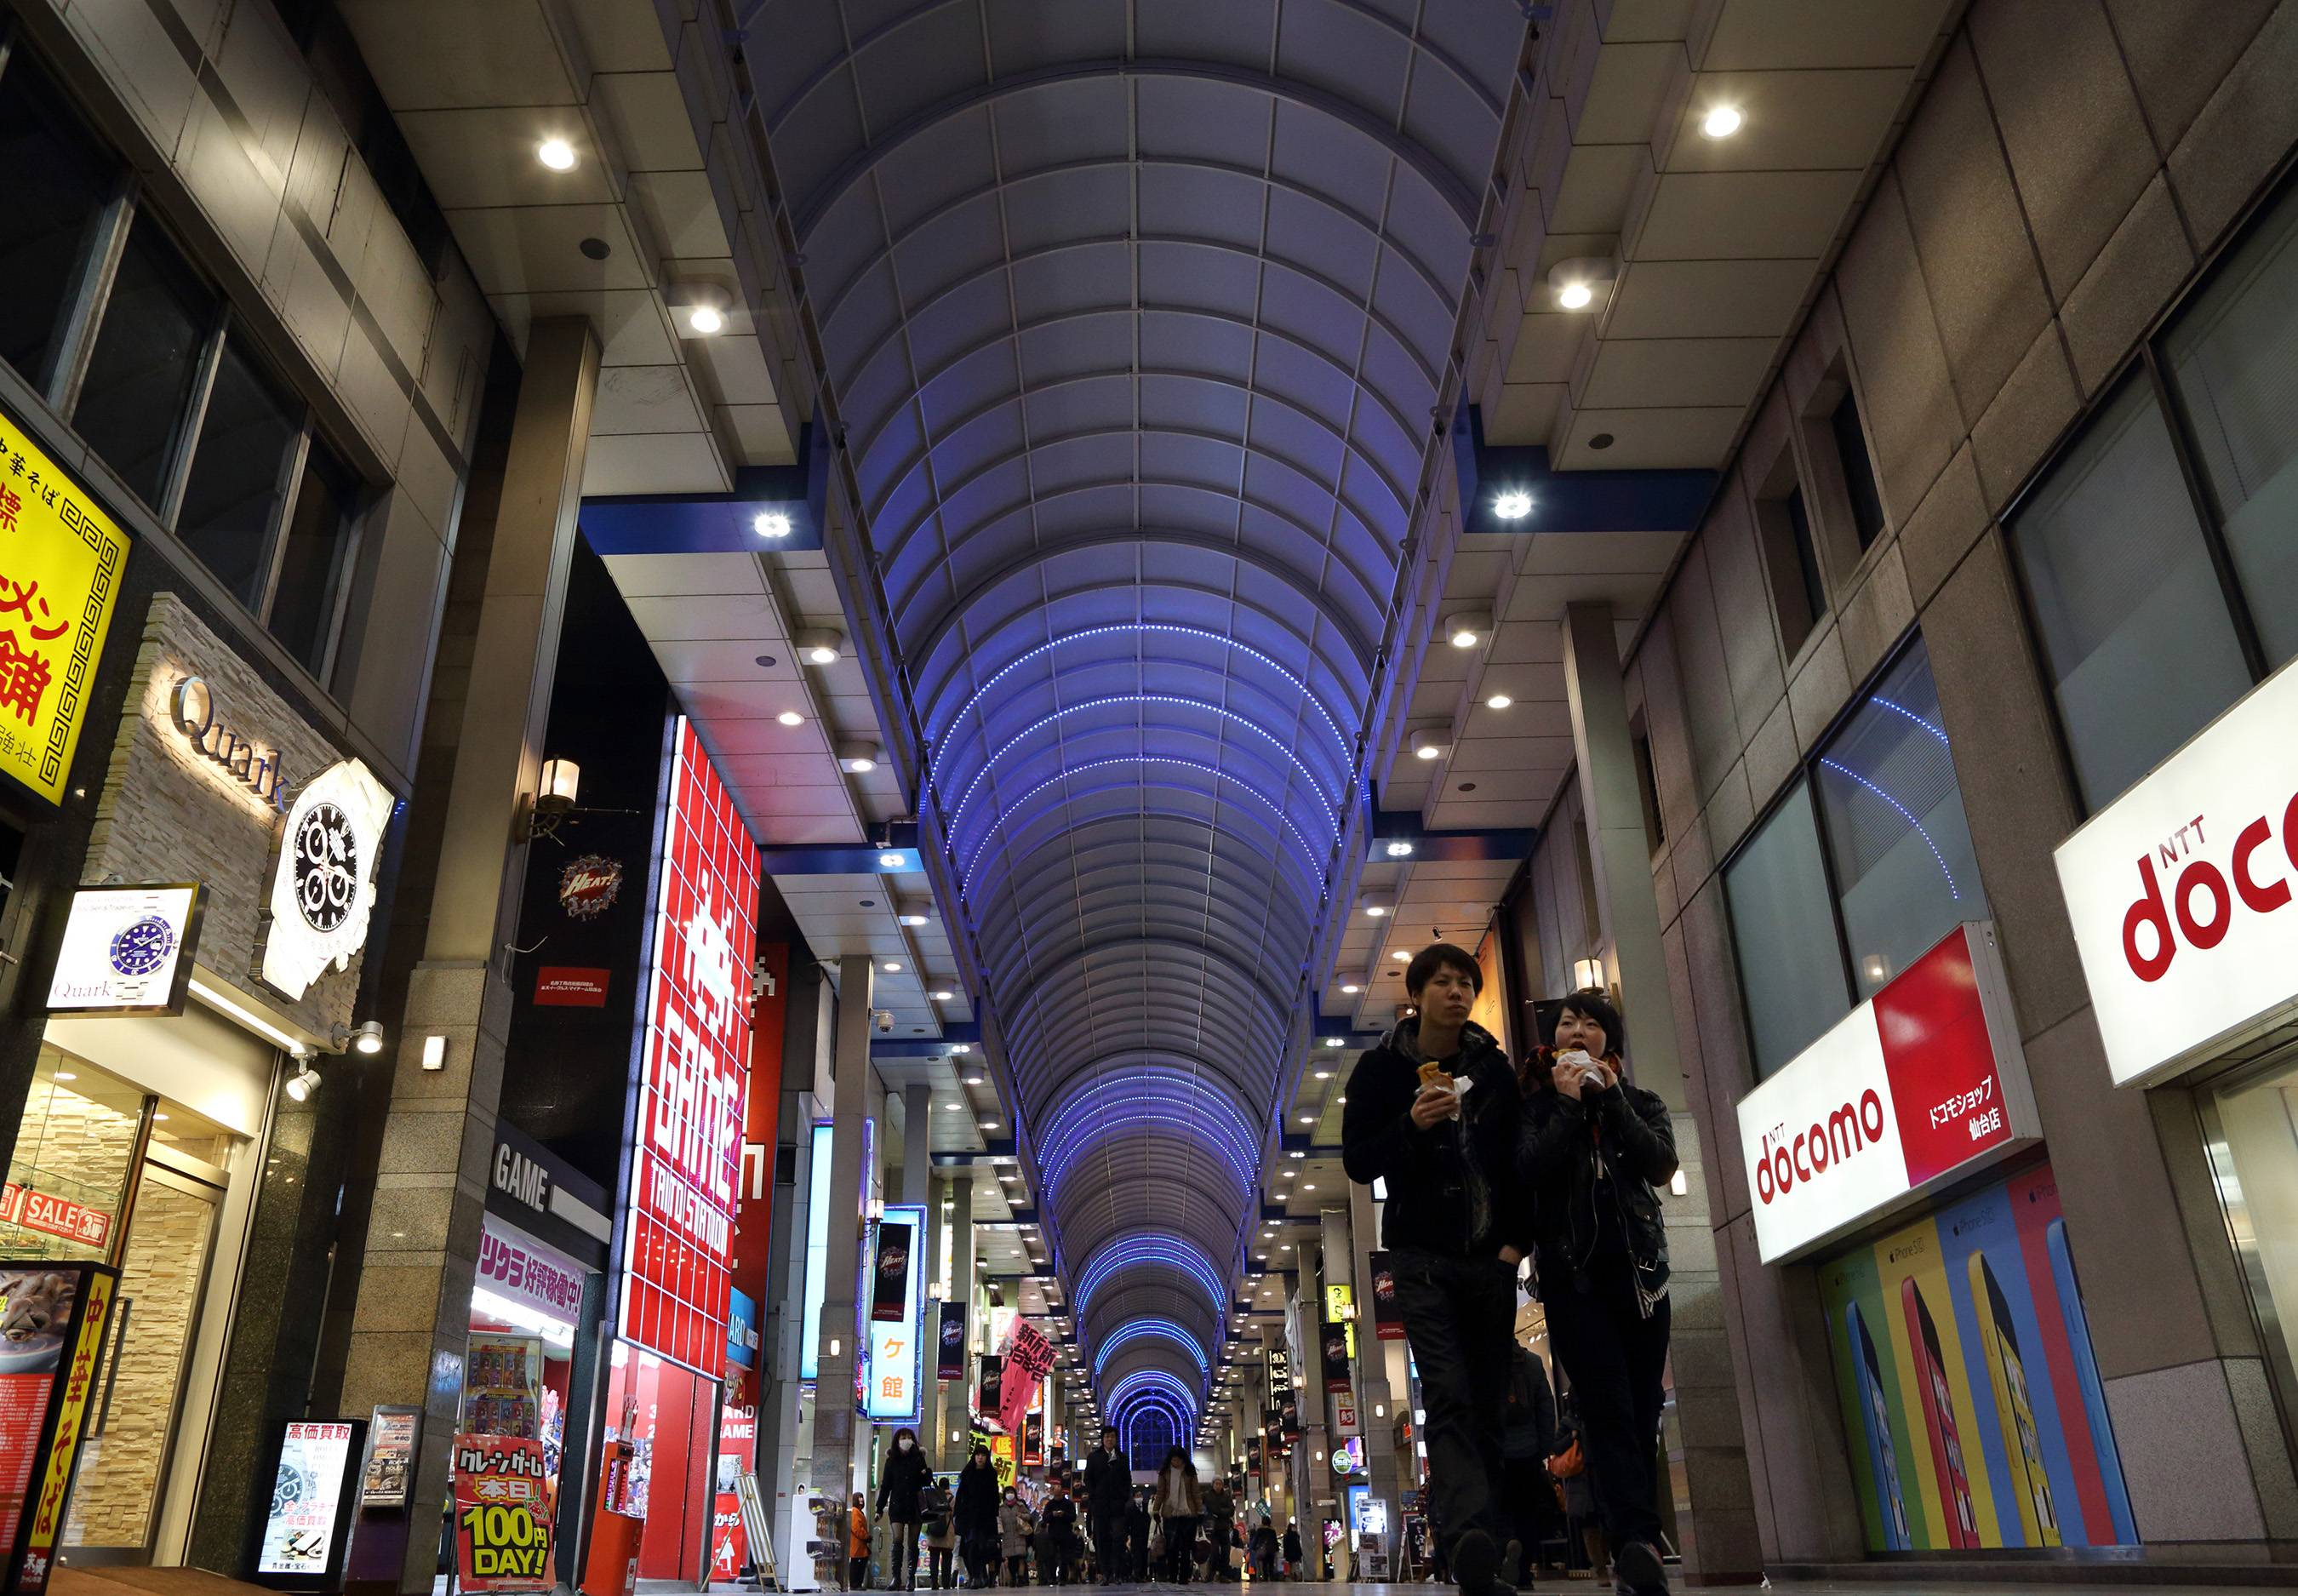 Pedestrians walks through a shopping street in Sendai, Miyagi Prefecture, JapanIn. its World Economic Outlook, The Organization for Economic Cooperation and Development  forecasts global growth of 3.6 percent this year, from an estimated 2.7 percent in 2013.